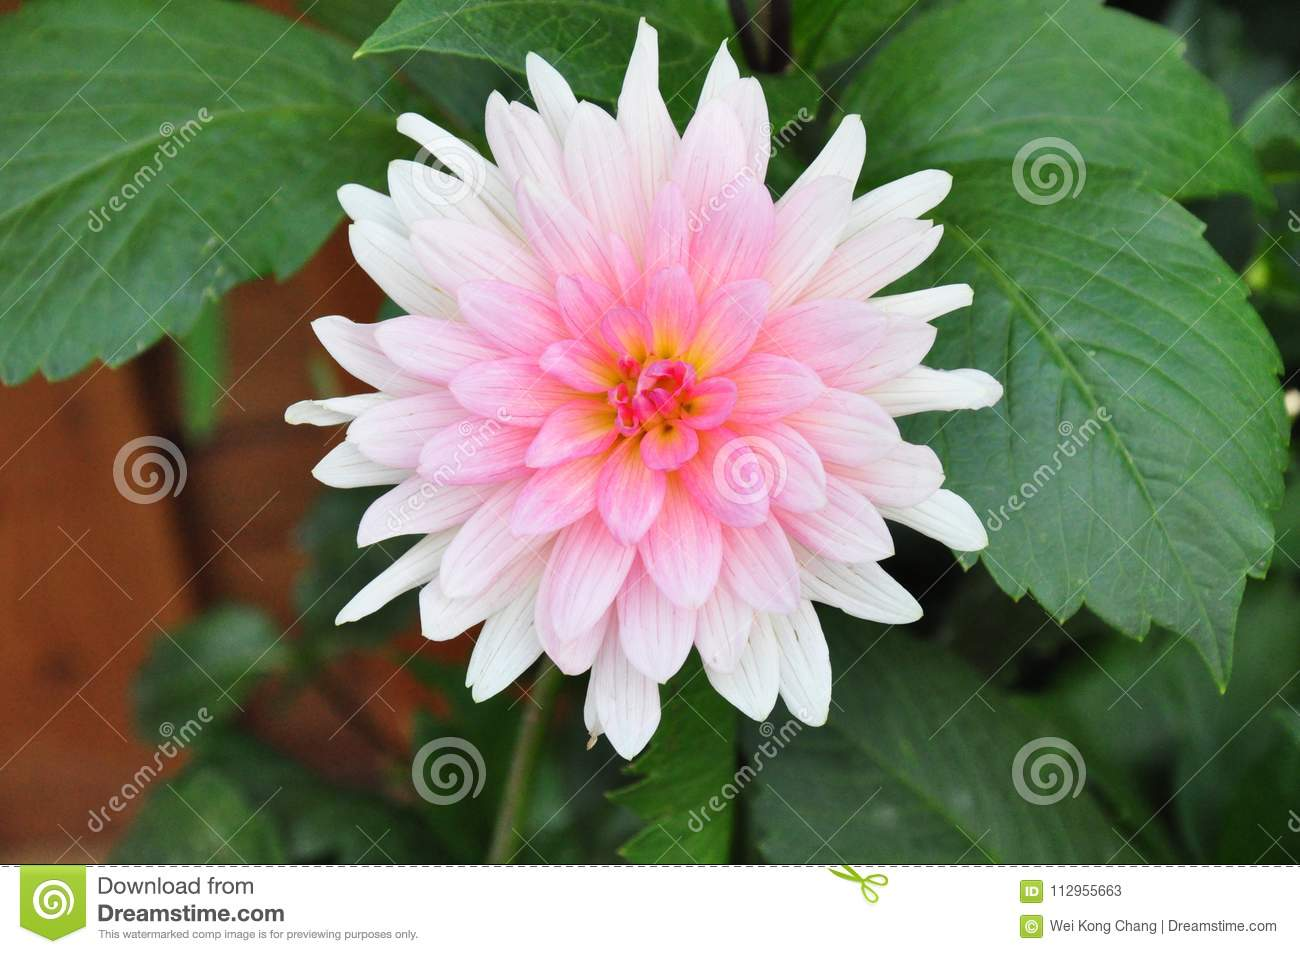 Pale pink flowers at hong kong flower exhibition stock image image download pale pink flowers at hong kong flower exhibition stock image image of exhibition mightylinksfo